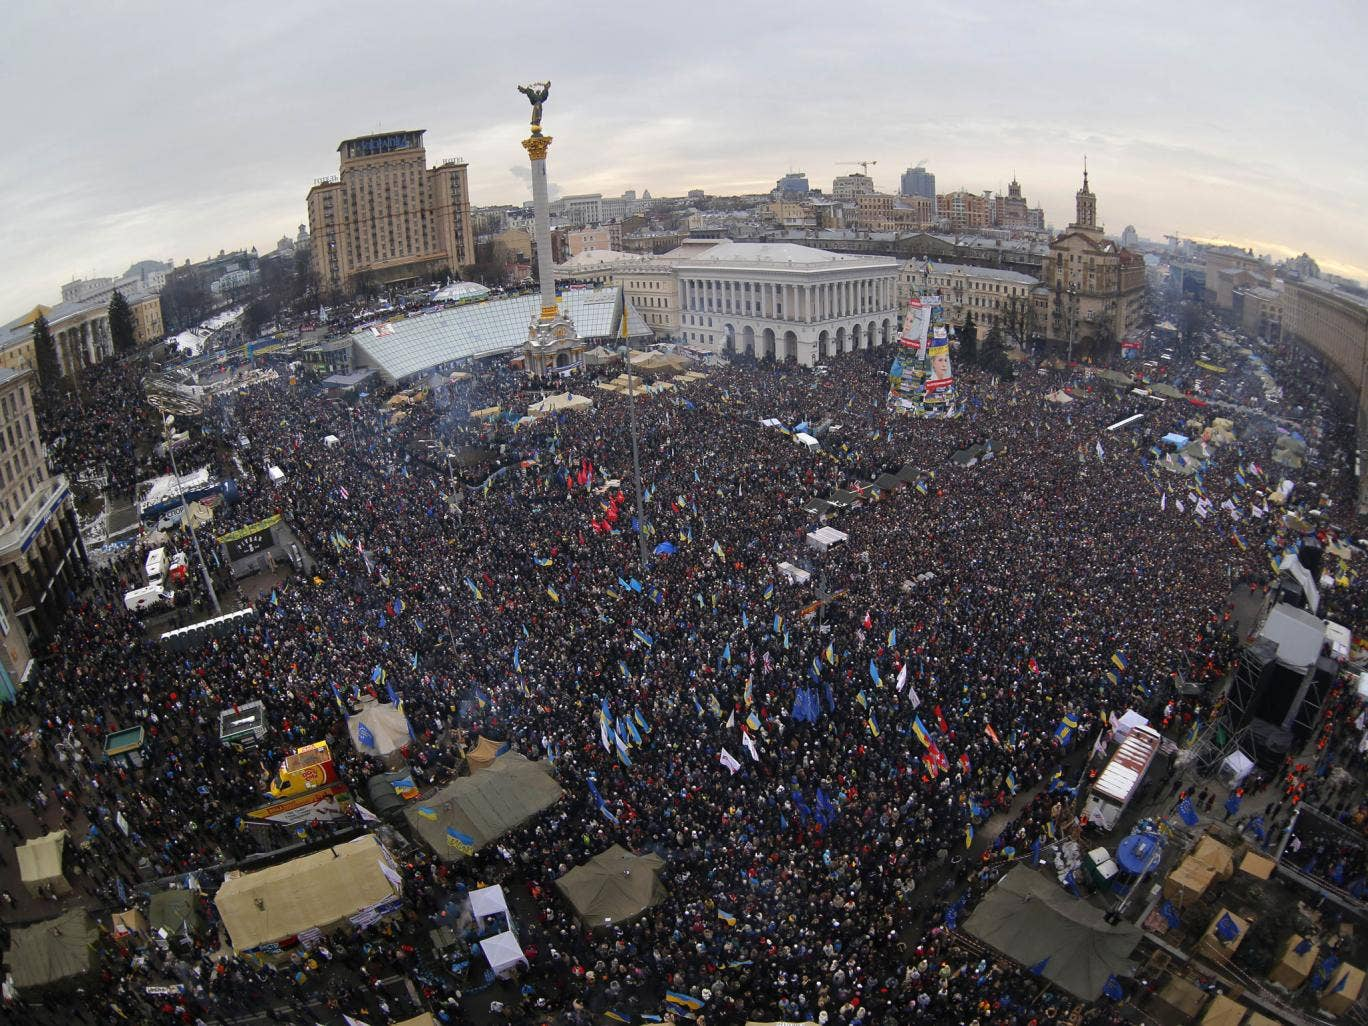 An estimated 200,000 anti-government demonstrators converge on Independence Square in central Kiev